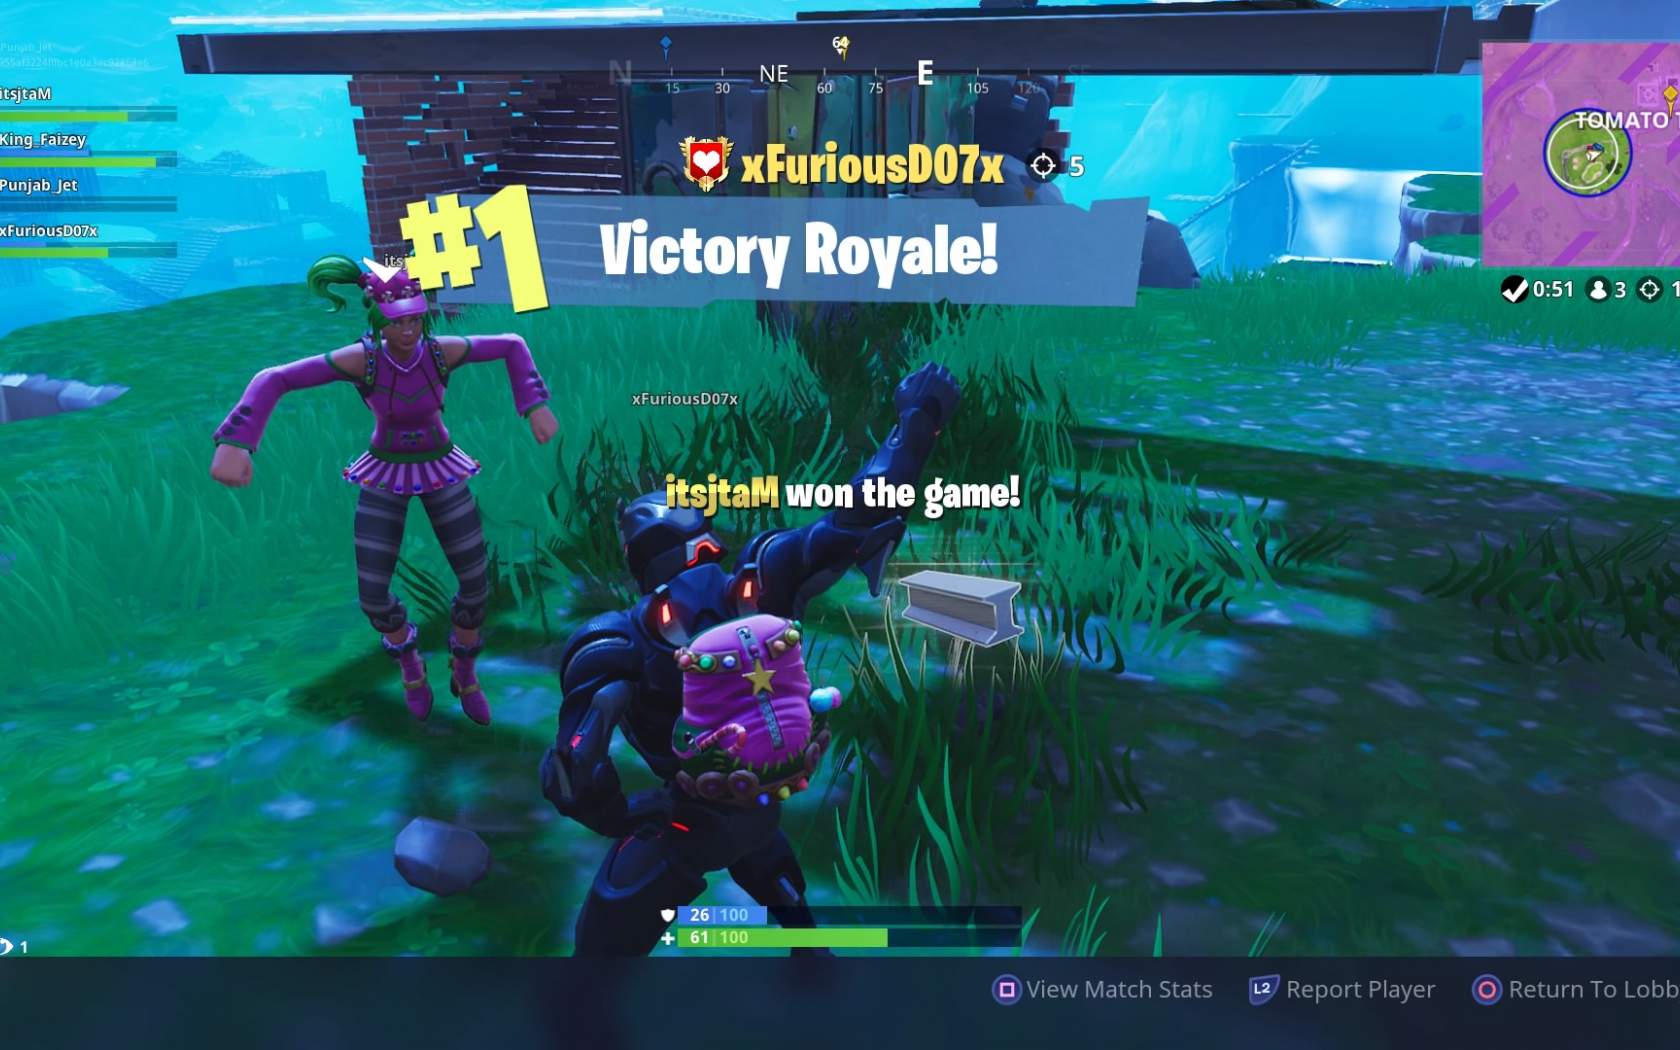 Free Download Fortnite Victory Royale Dance Widescreen Desktop Wallpaper 1473 1920x1080 For Your Desktop Mobile Tablet Explore 25 Fortnite Victory Royale Wallpapers Fortnite Victory Royale Wallpapers Royale Bomber Fortnite